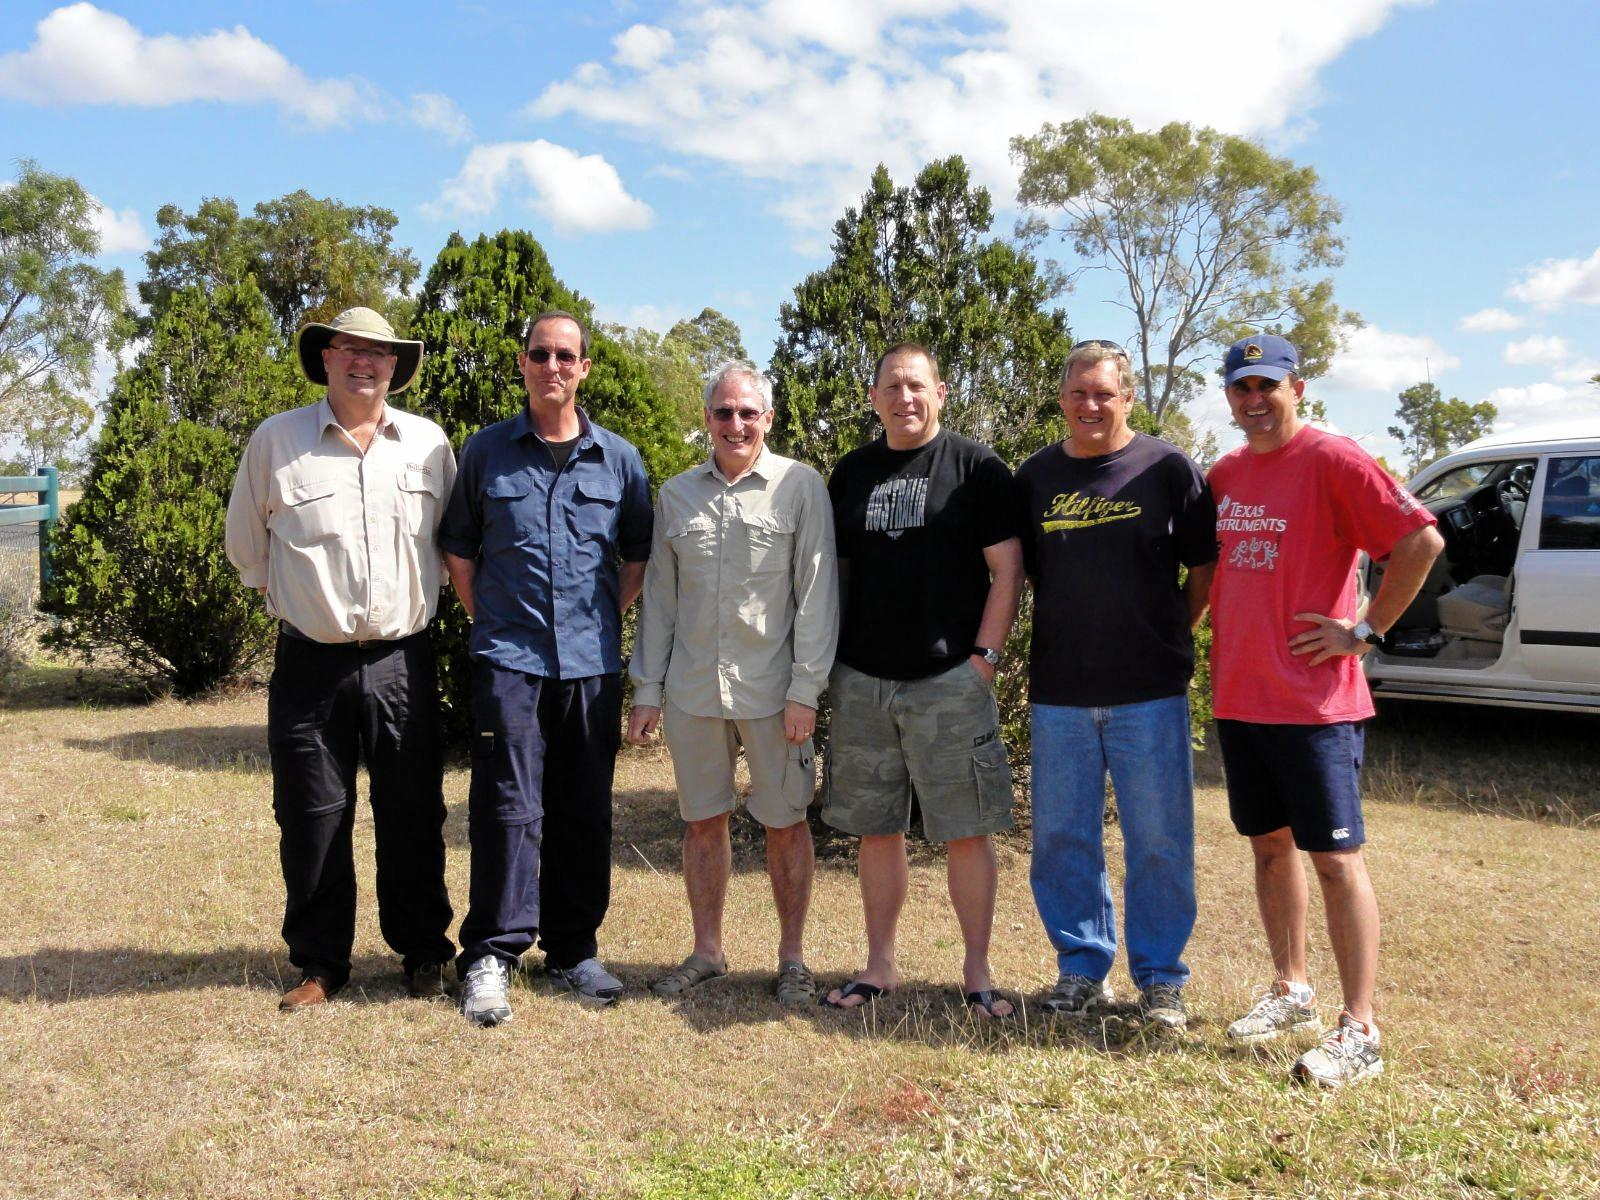 Simon Irwin, Scott McGregor, John Bryce, Neil Hancock, Ian Waraker and Clay Weston at Carnarvon Gorge in 2011.